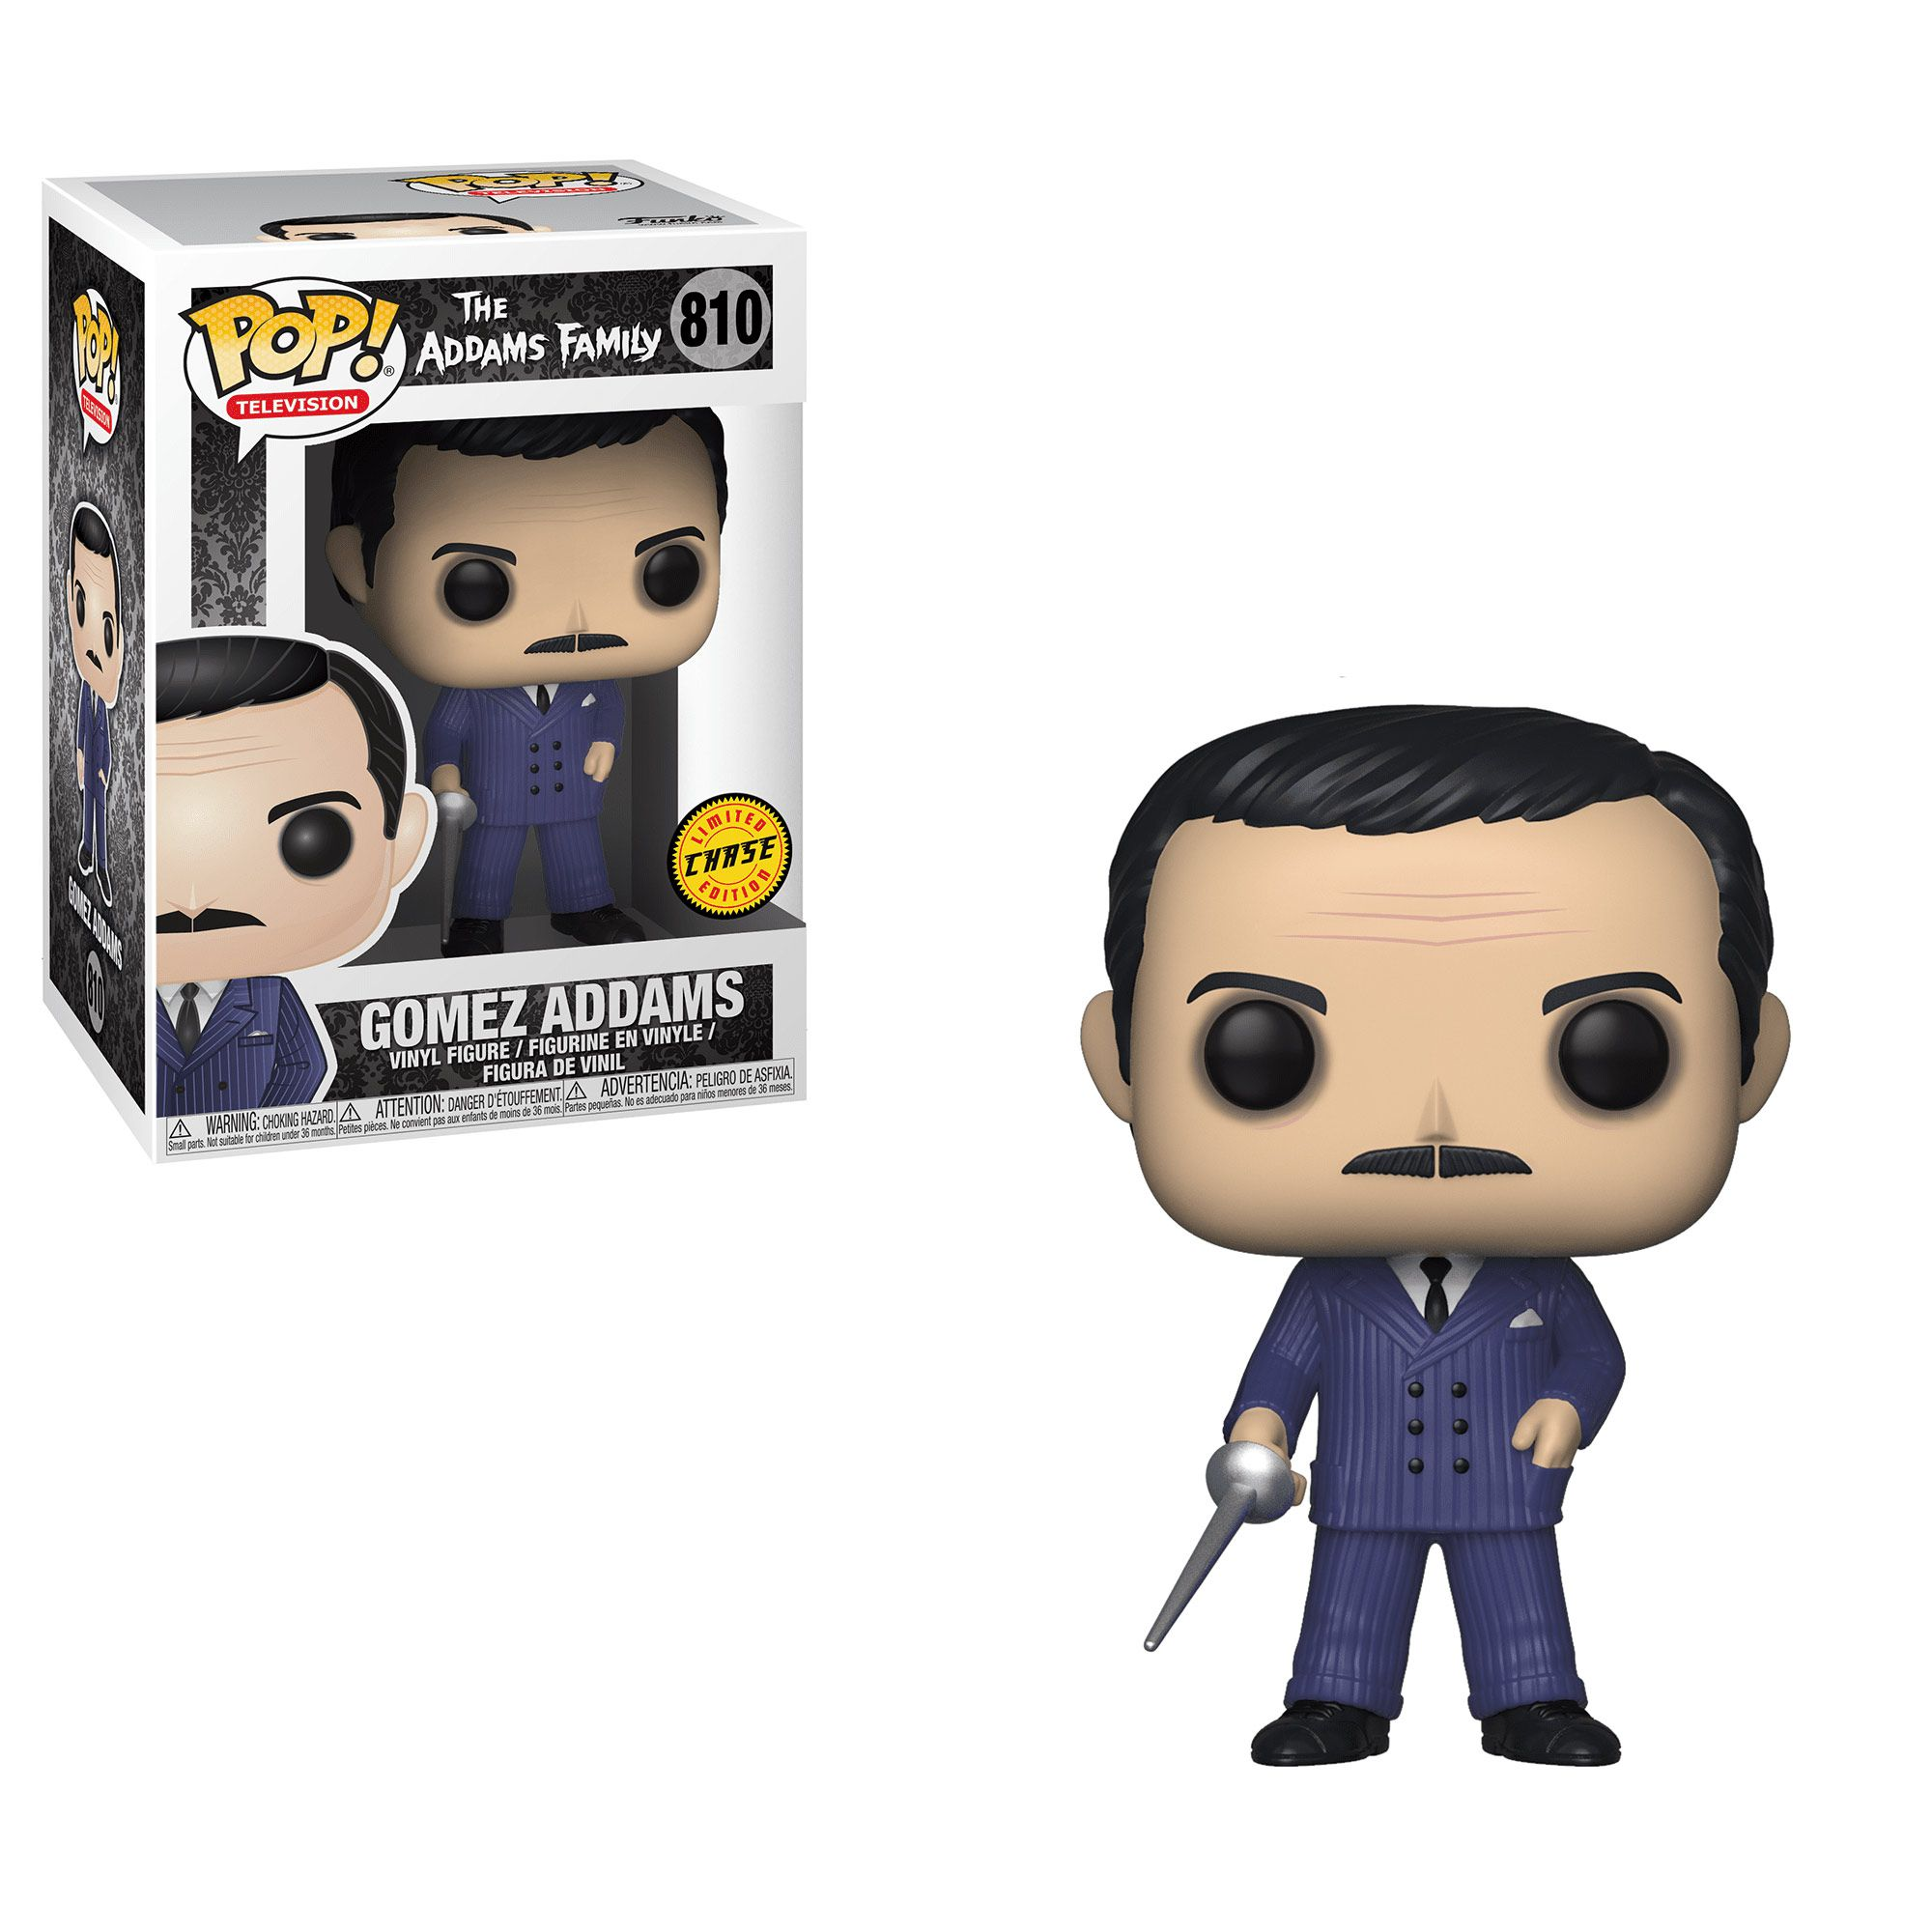 Gomez #810 - The Addams Family (A Família Addams) - Funko Pop! Television Chase Limited Edition